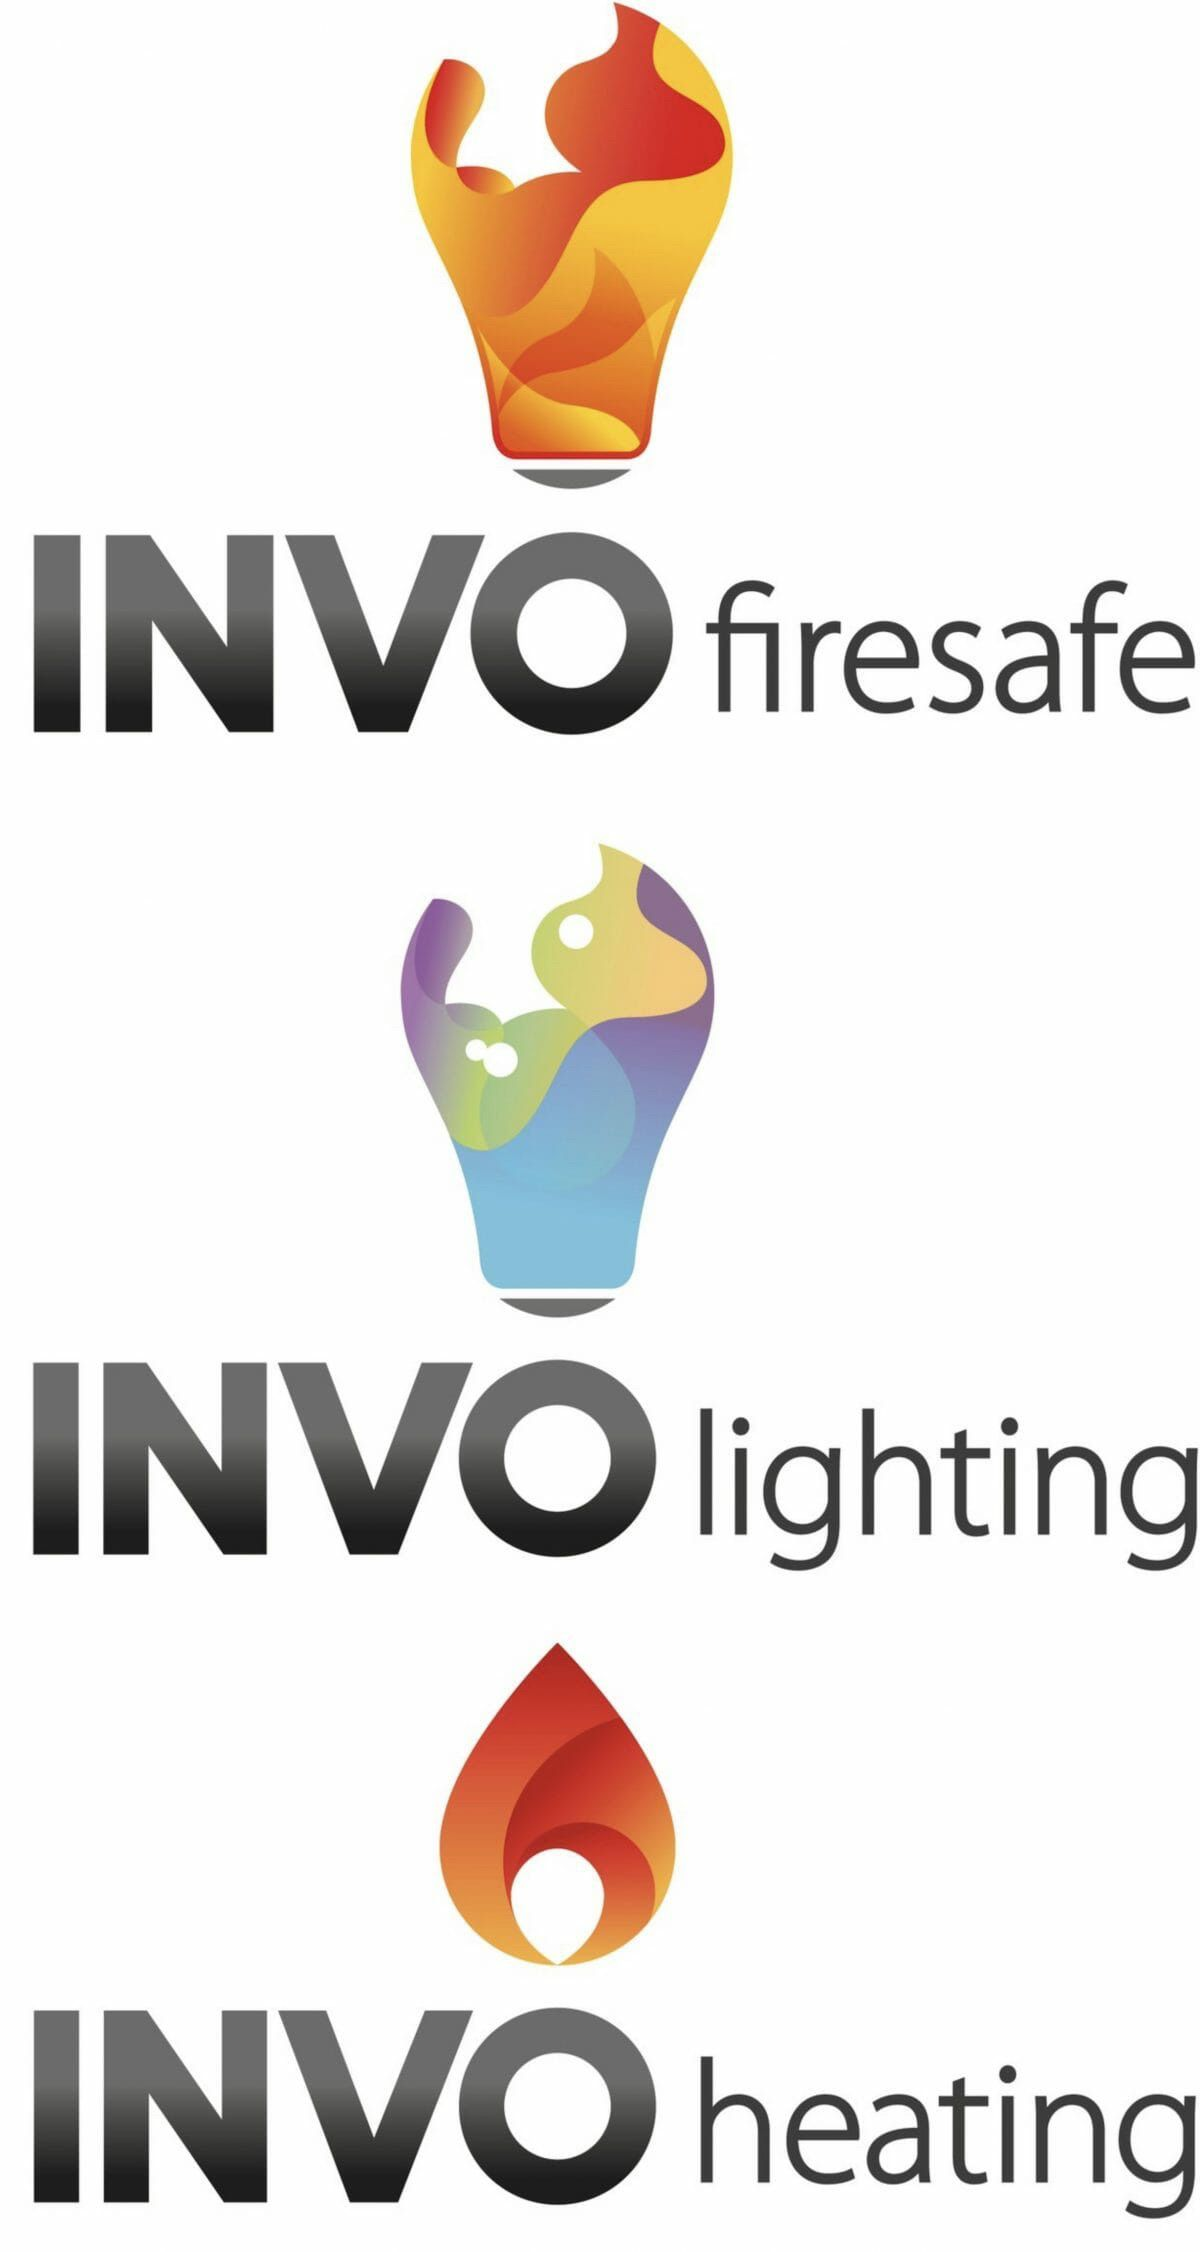 heating-and-lighting-logos-1200x2252.jpg